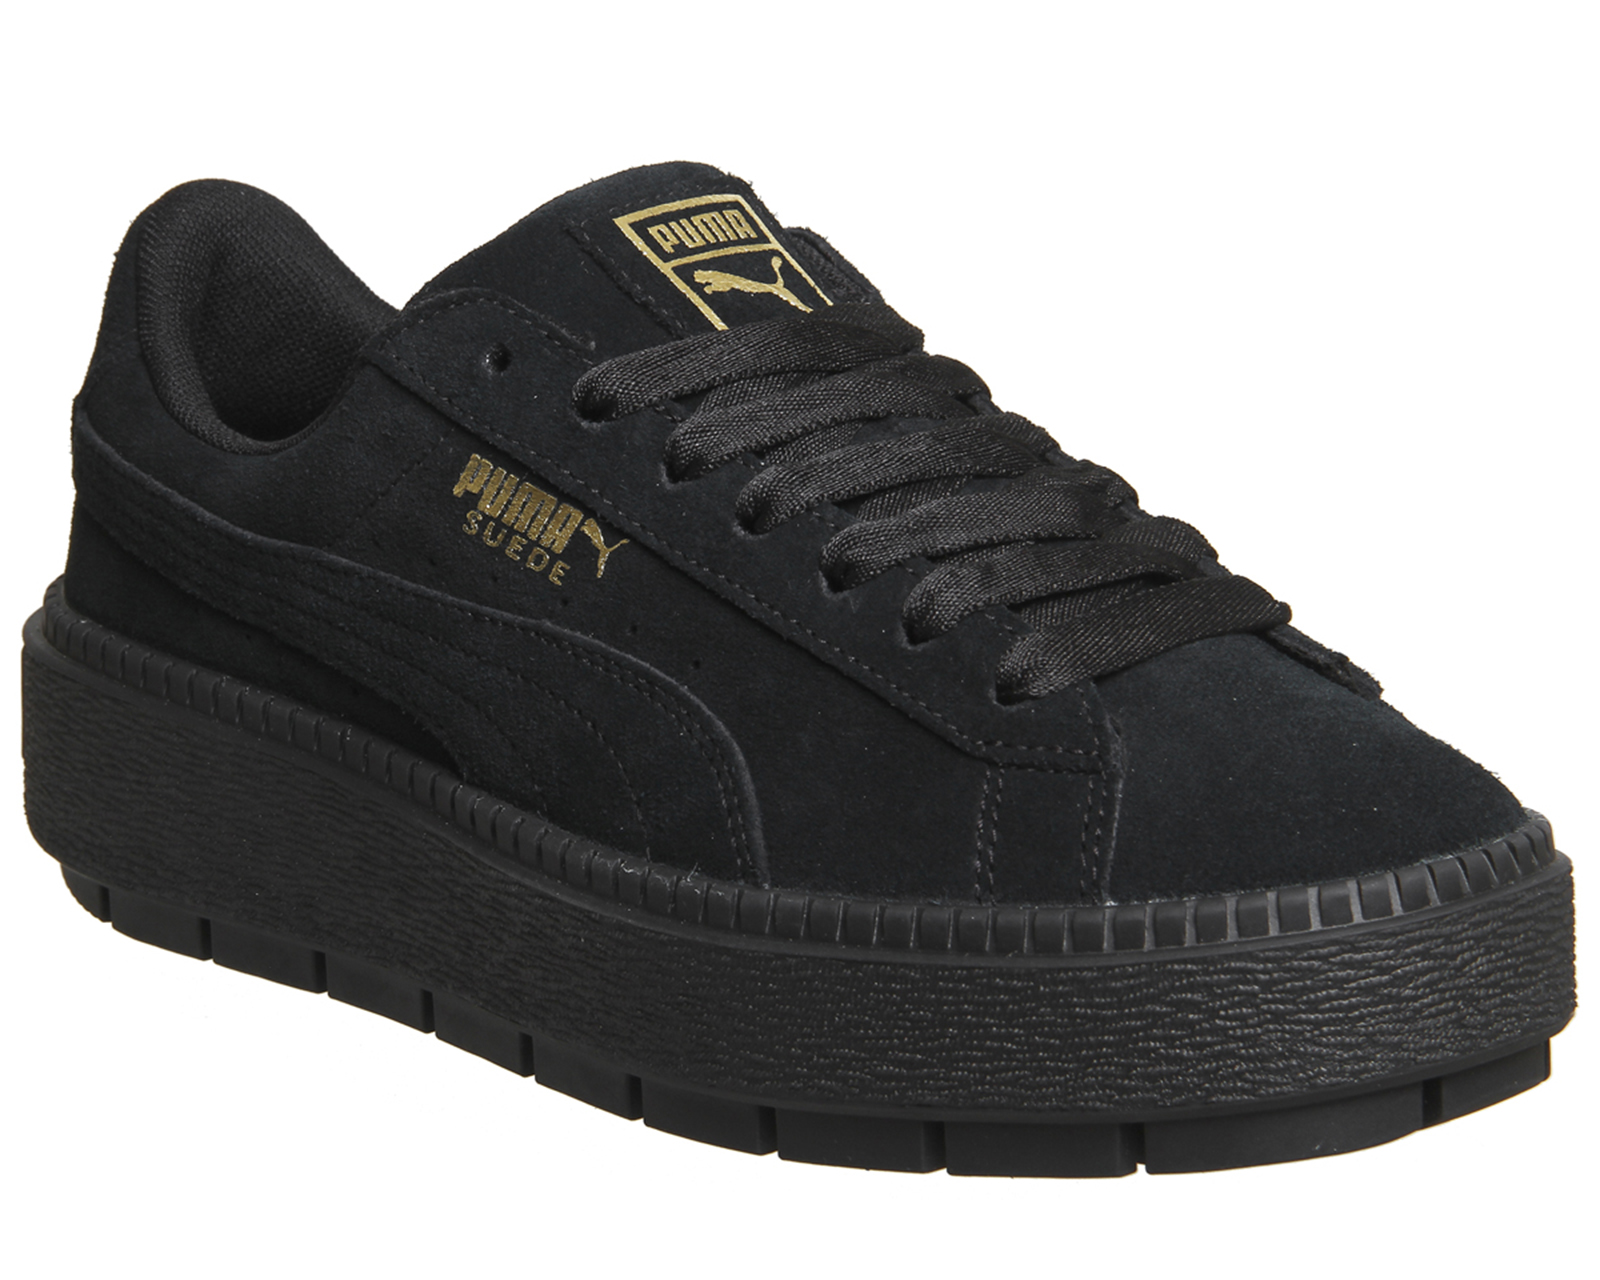 06a1e69e682 Sentinel Womens Puma Suede Platform Trace Trainers PUMA BLACK Trainers Shoes